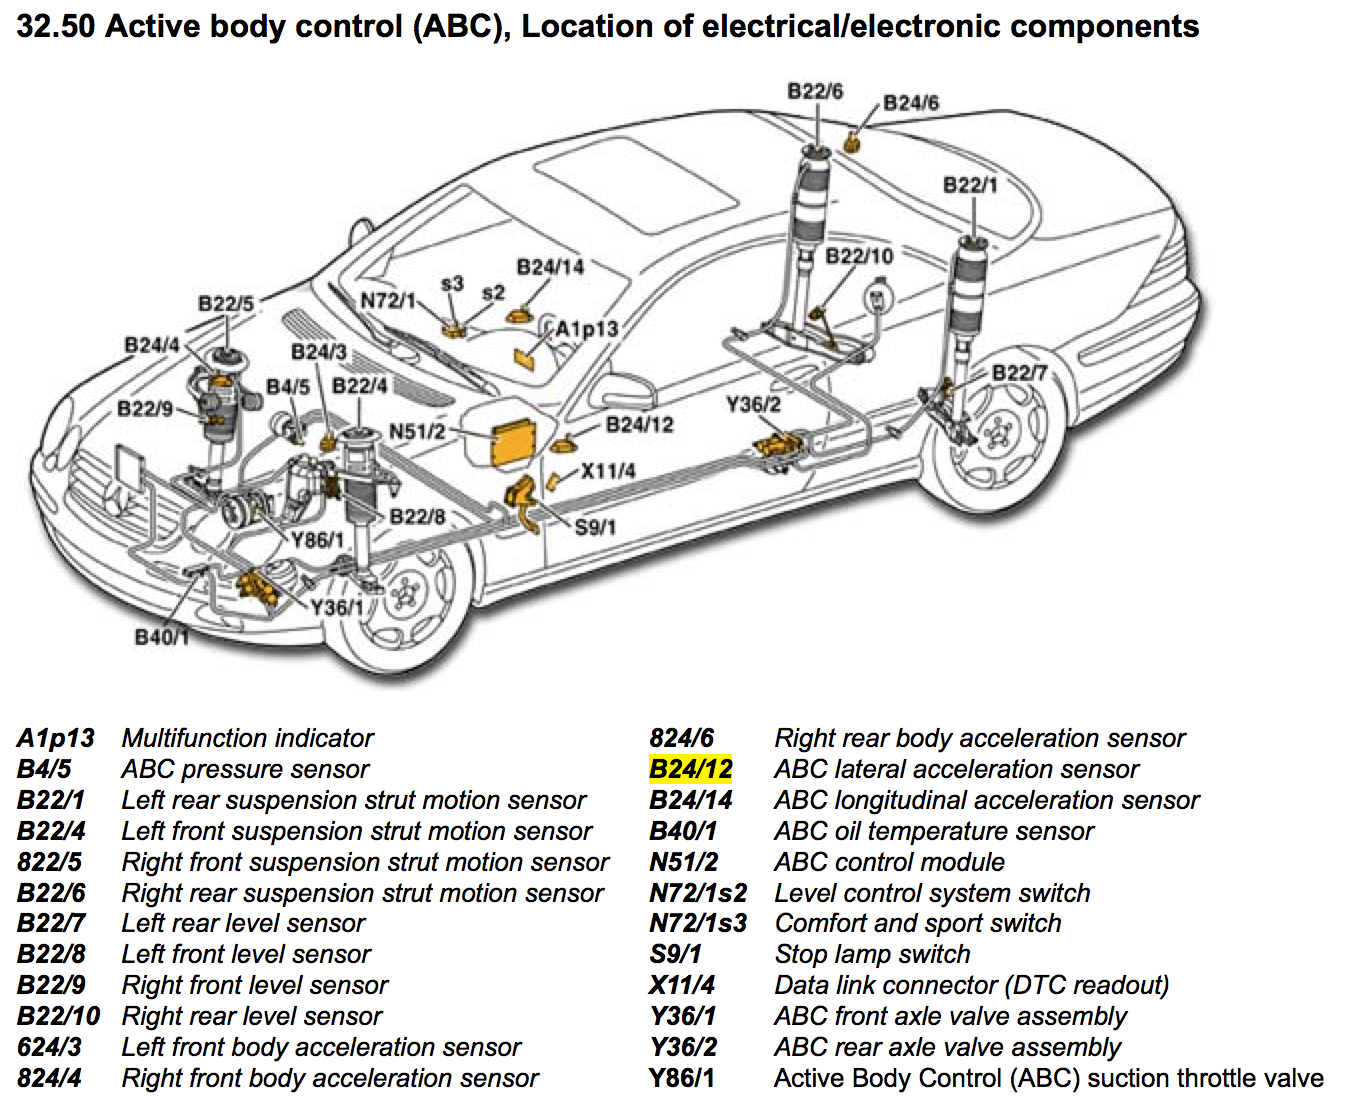 Mercedes Abc Drive Carefully blogspot on oil pressure sensor location